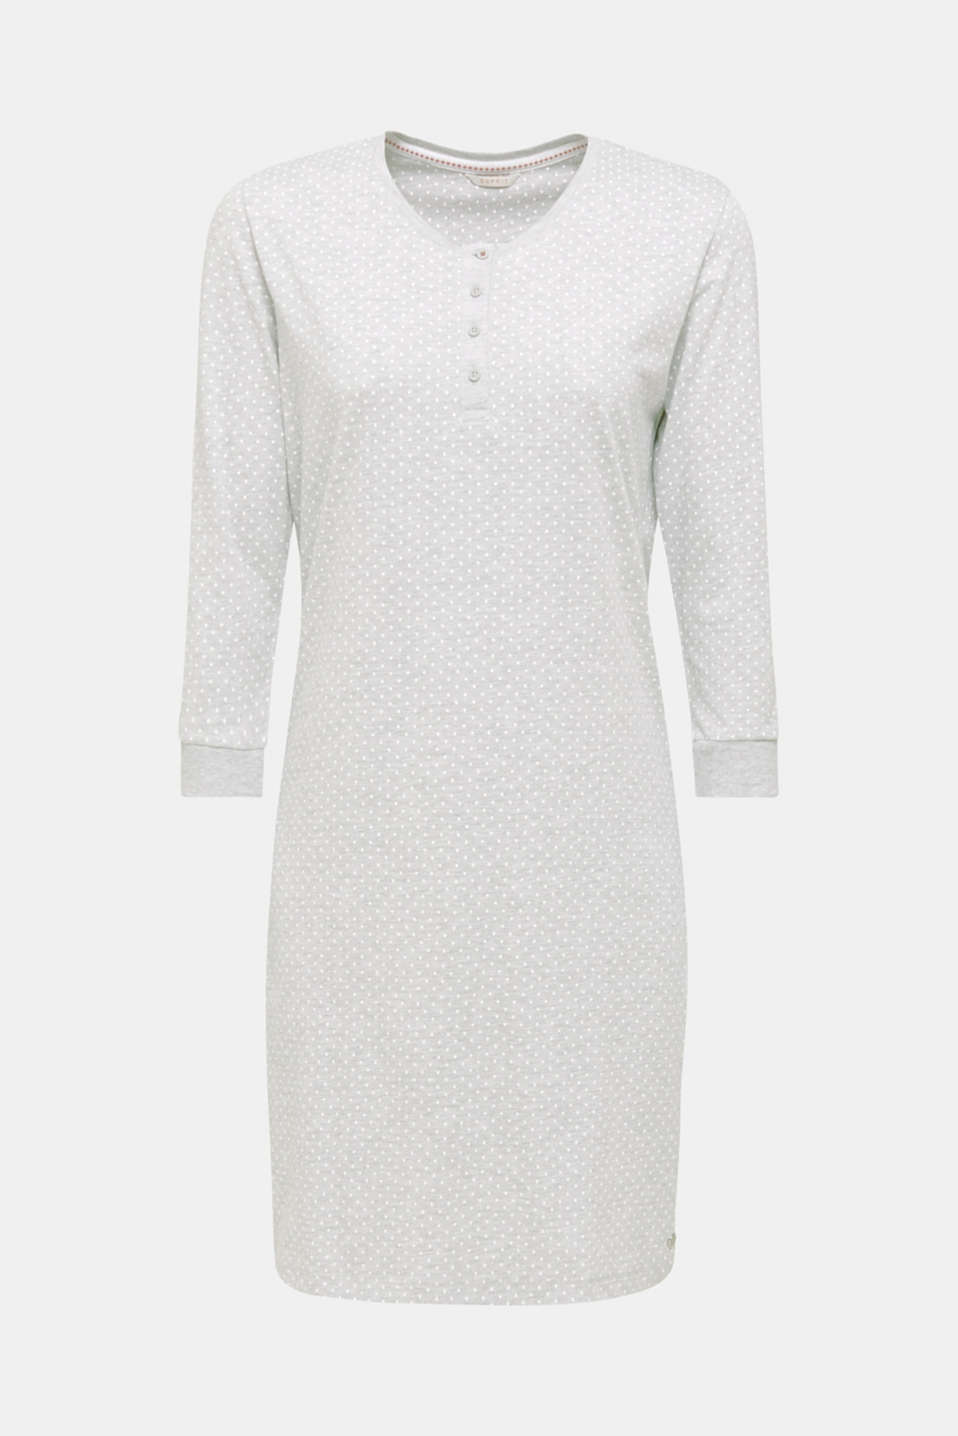 MODERN COTTON mix + match nightshirt, LIGHT GREY, detail image number 6